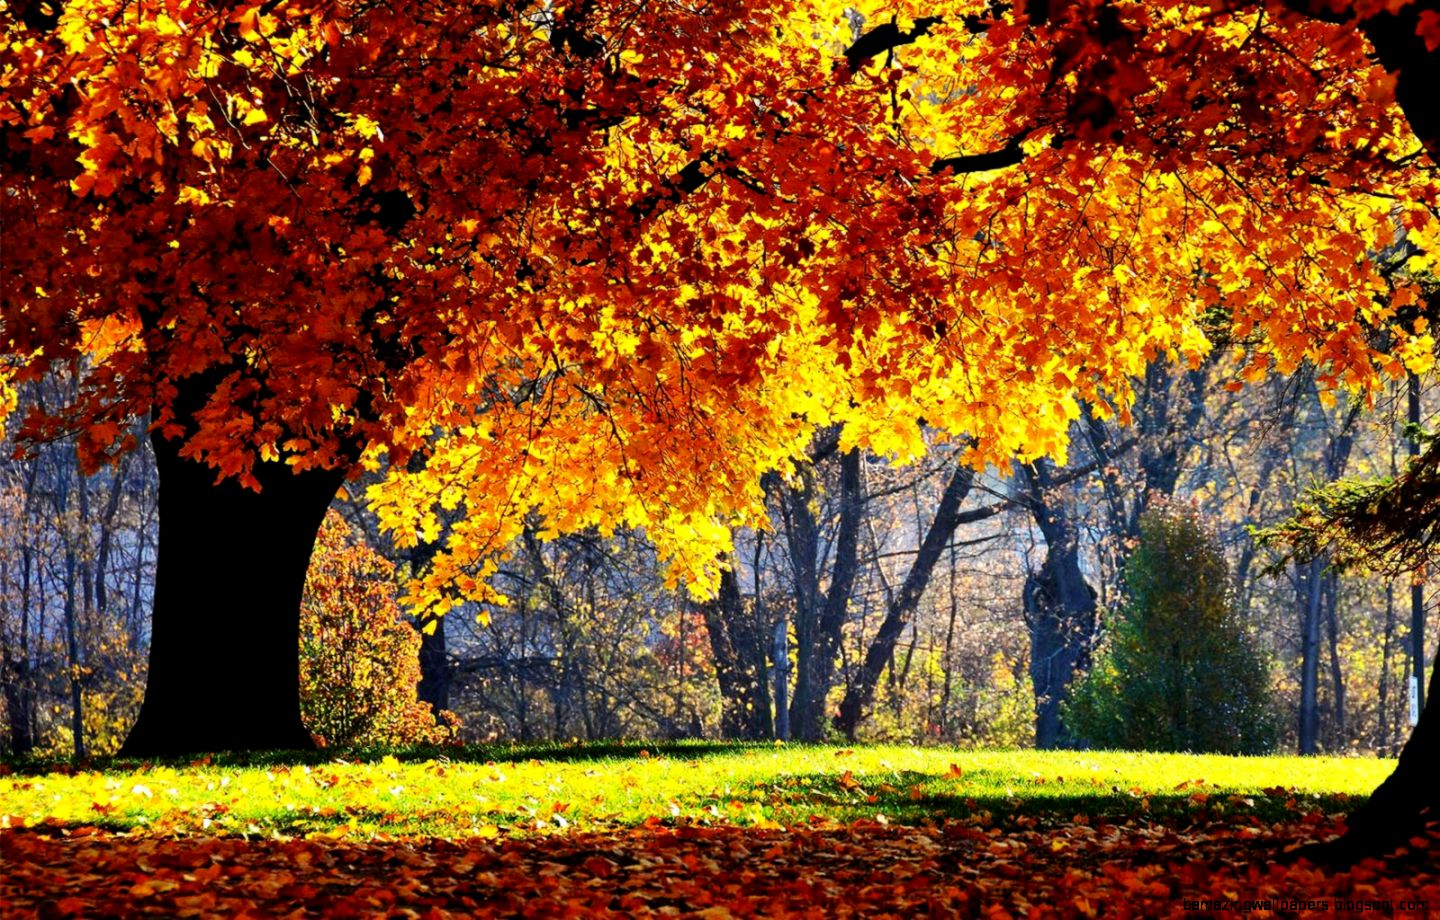 Fall Scenery Wallpapers   Wallpaper Cave